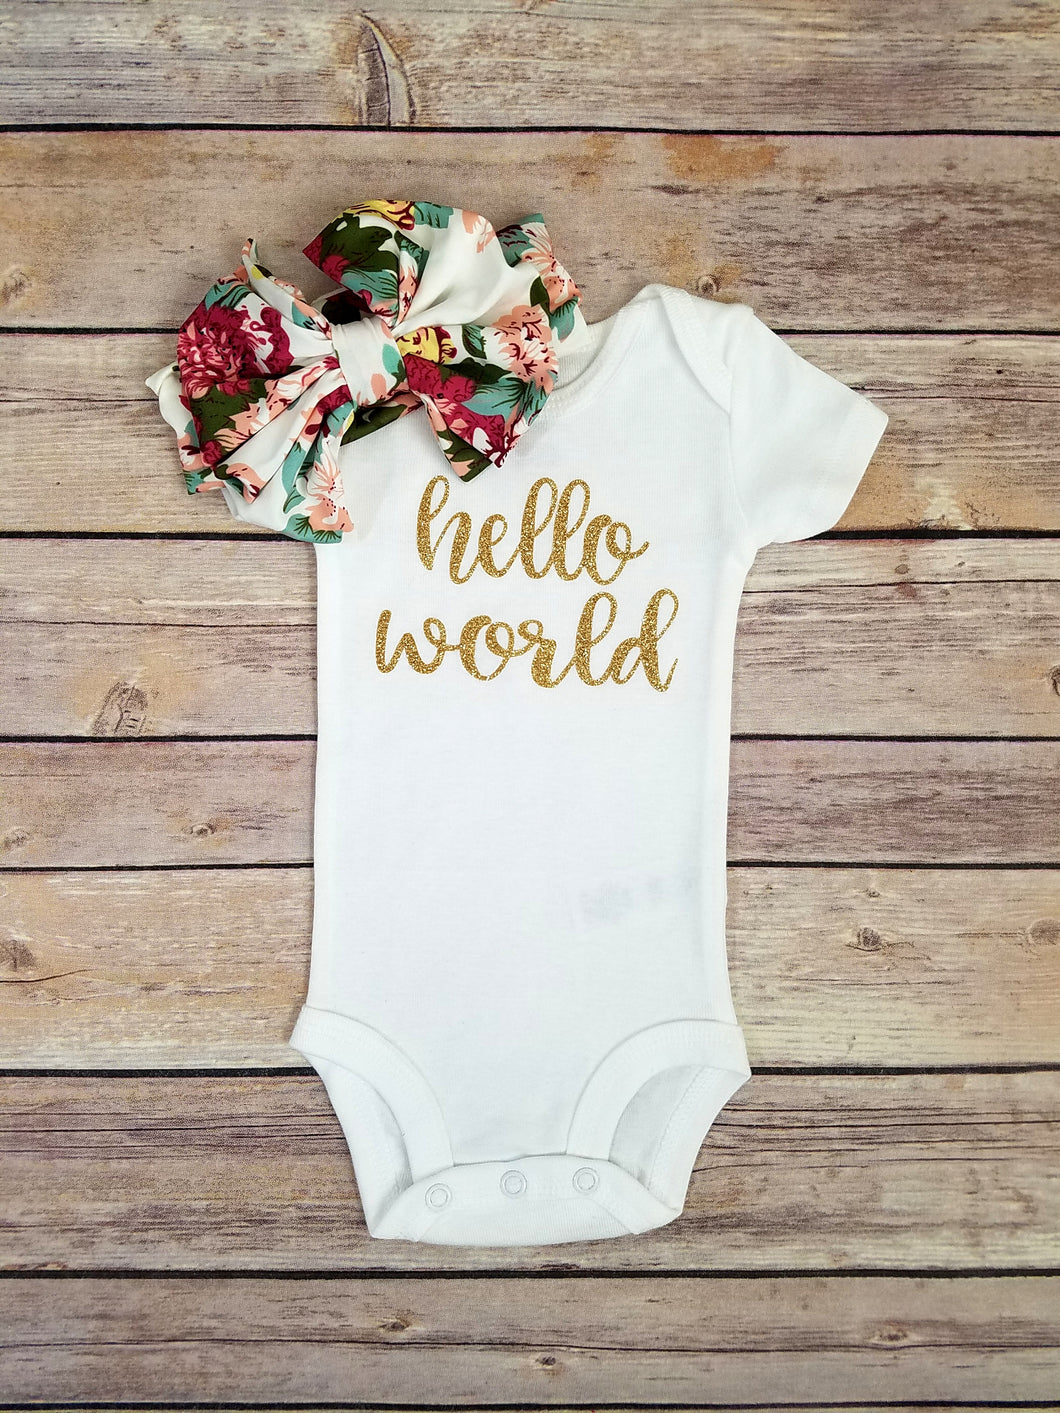 Charlie Hello World Onesie And Floral Headband Coming Home Outfit Girl - Adassa Rose